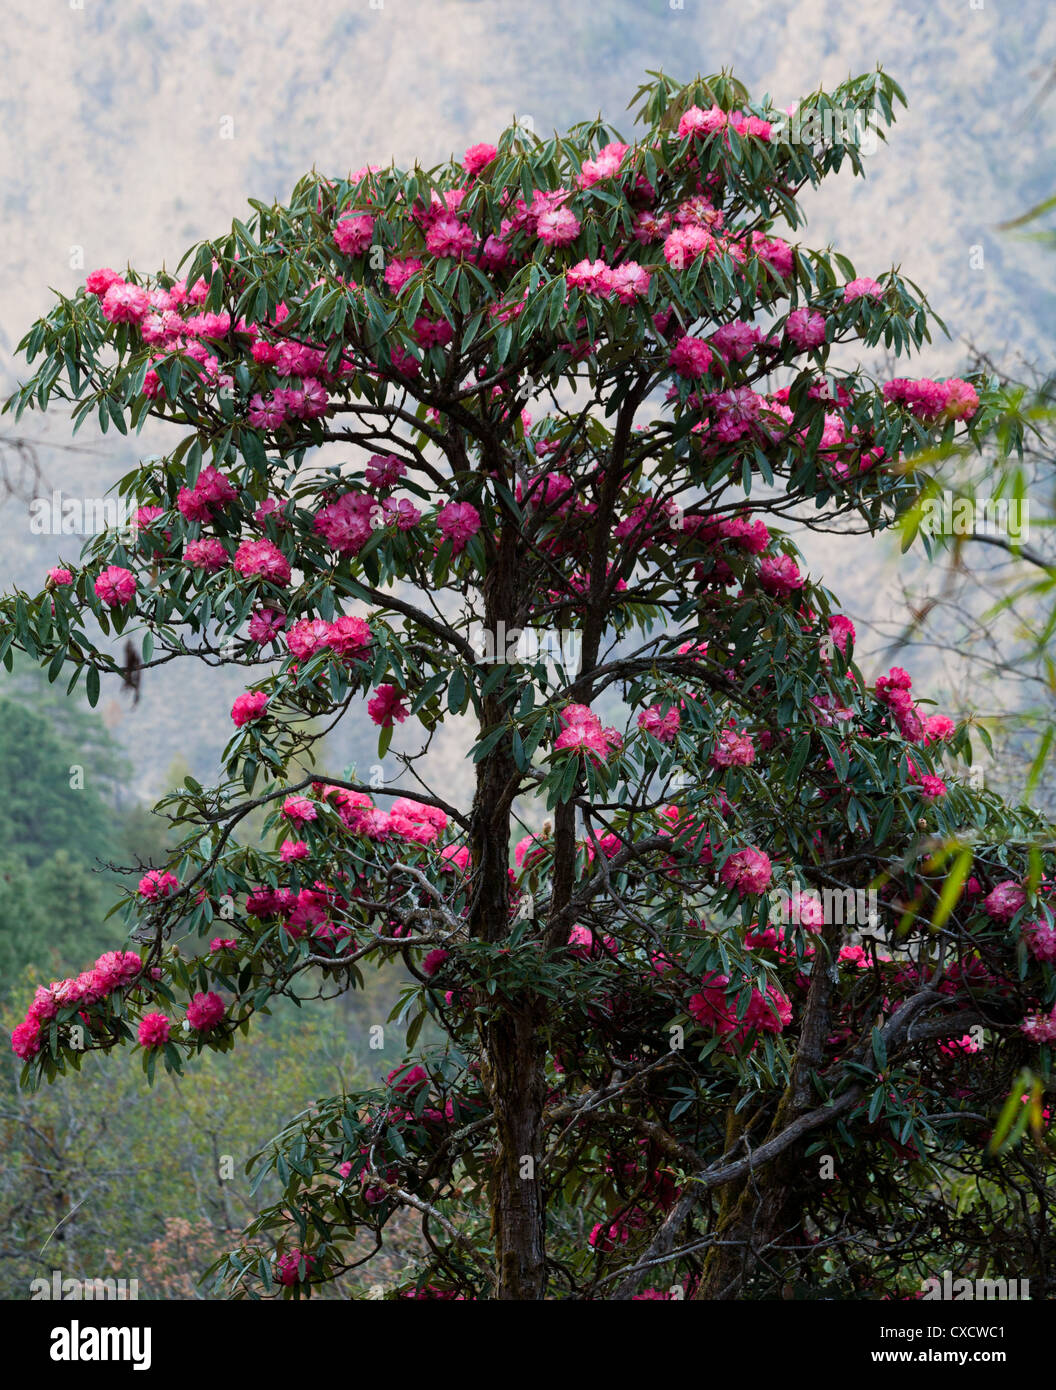 Pink Rhododendrons, Rhododendron arboreum, Nepal  - Stock Image